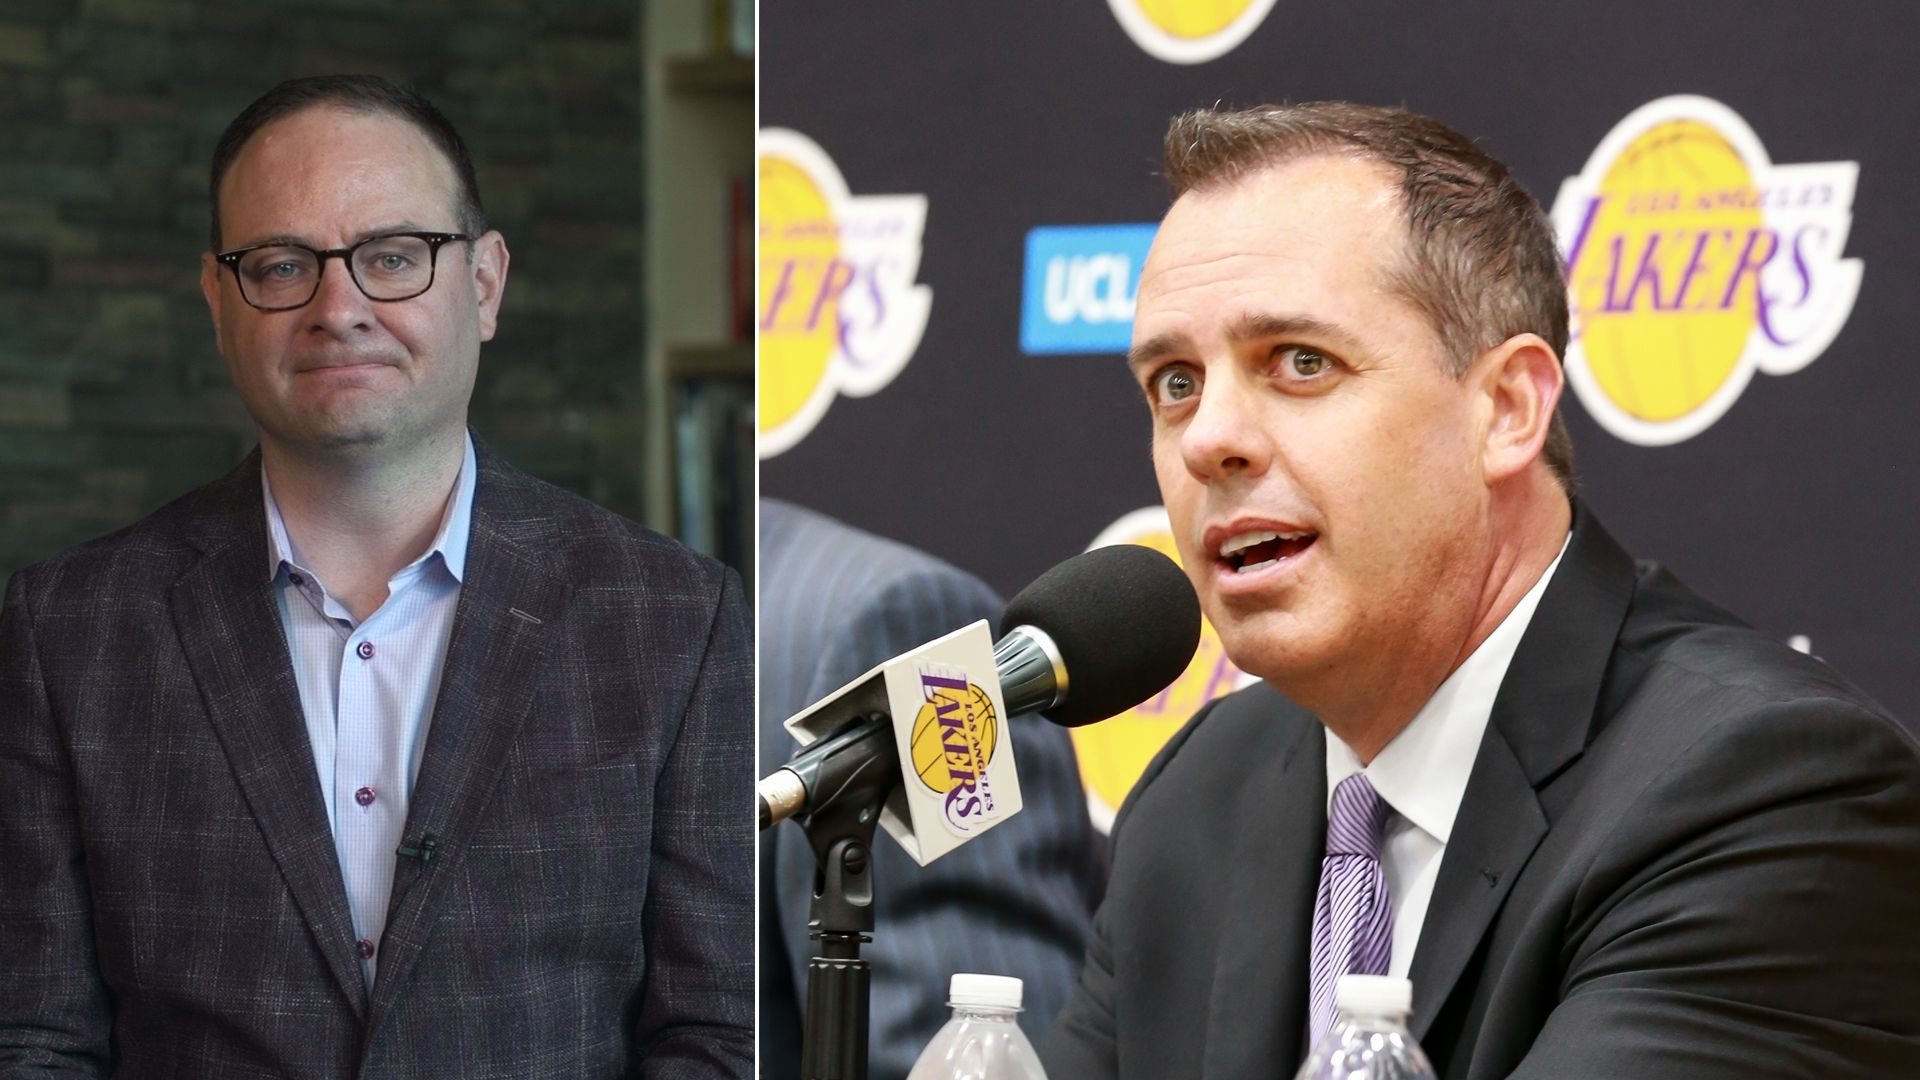 Woj: Frank Vogel has difficult task ahead in LA